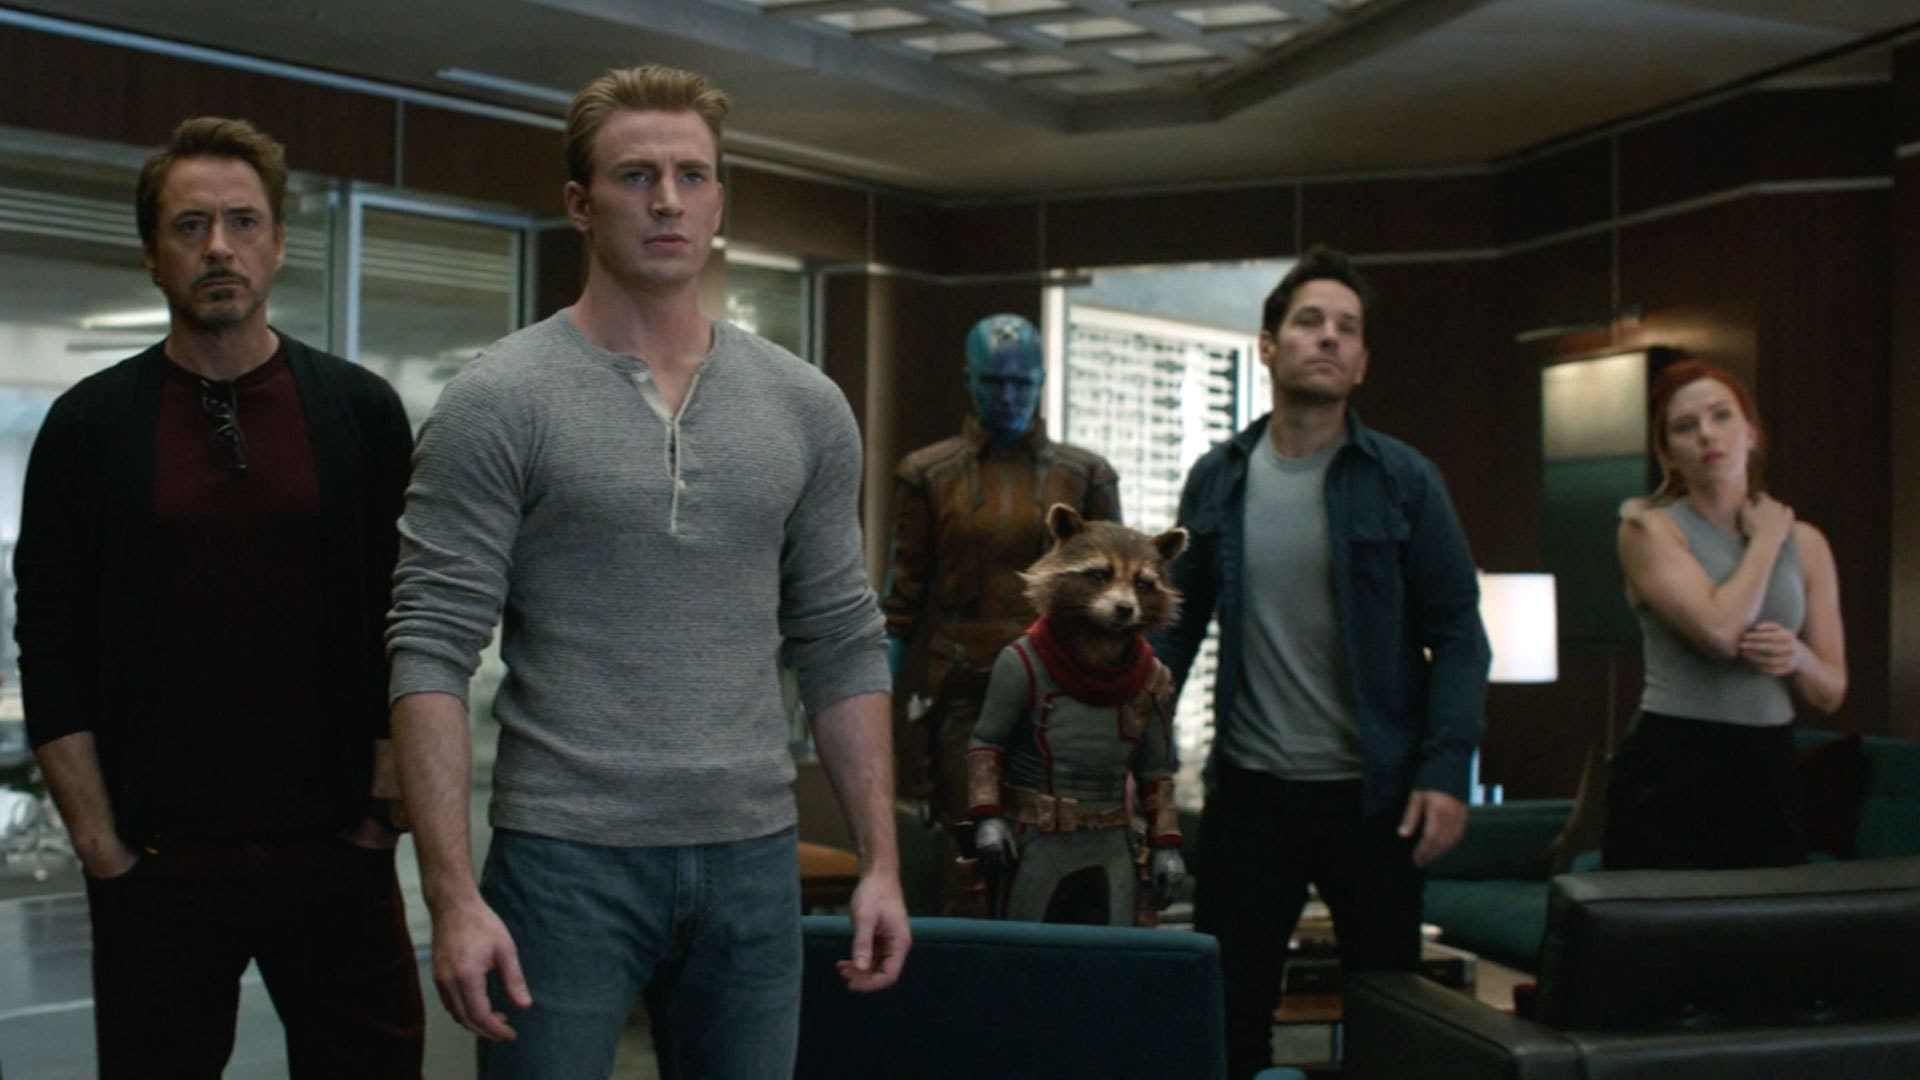 Marvel Studios' Avengers: Endgame – Tickets On Sale Soon!